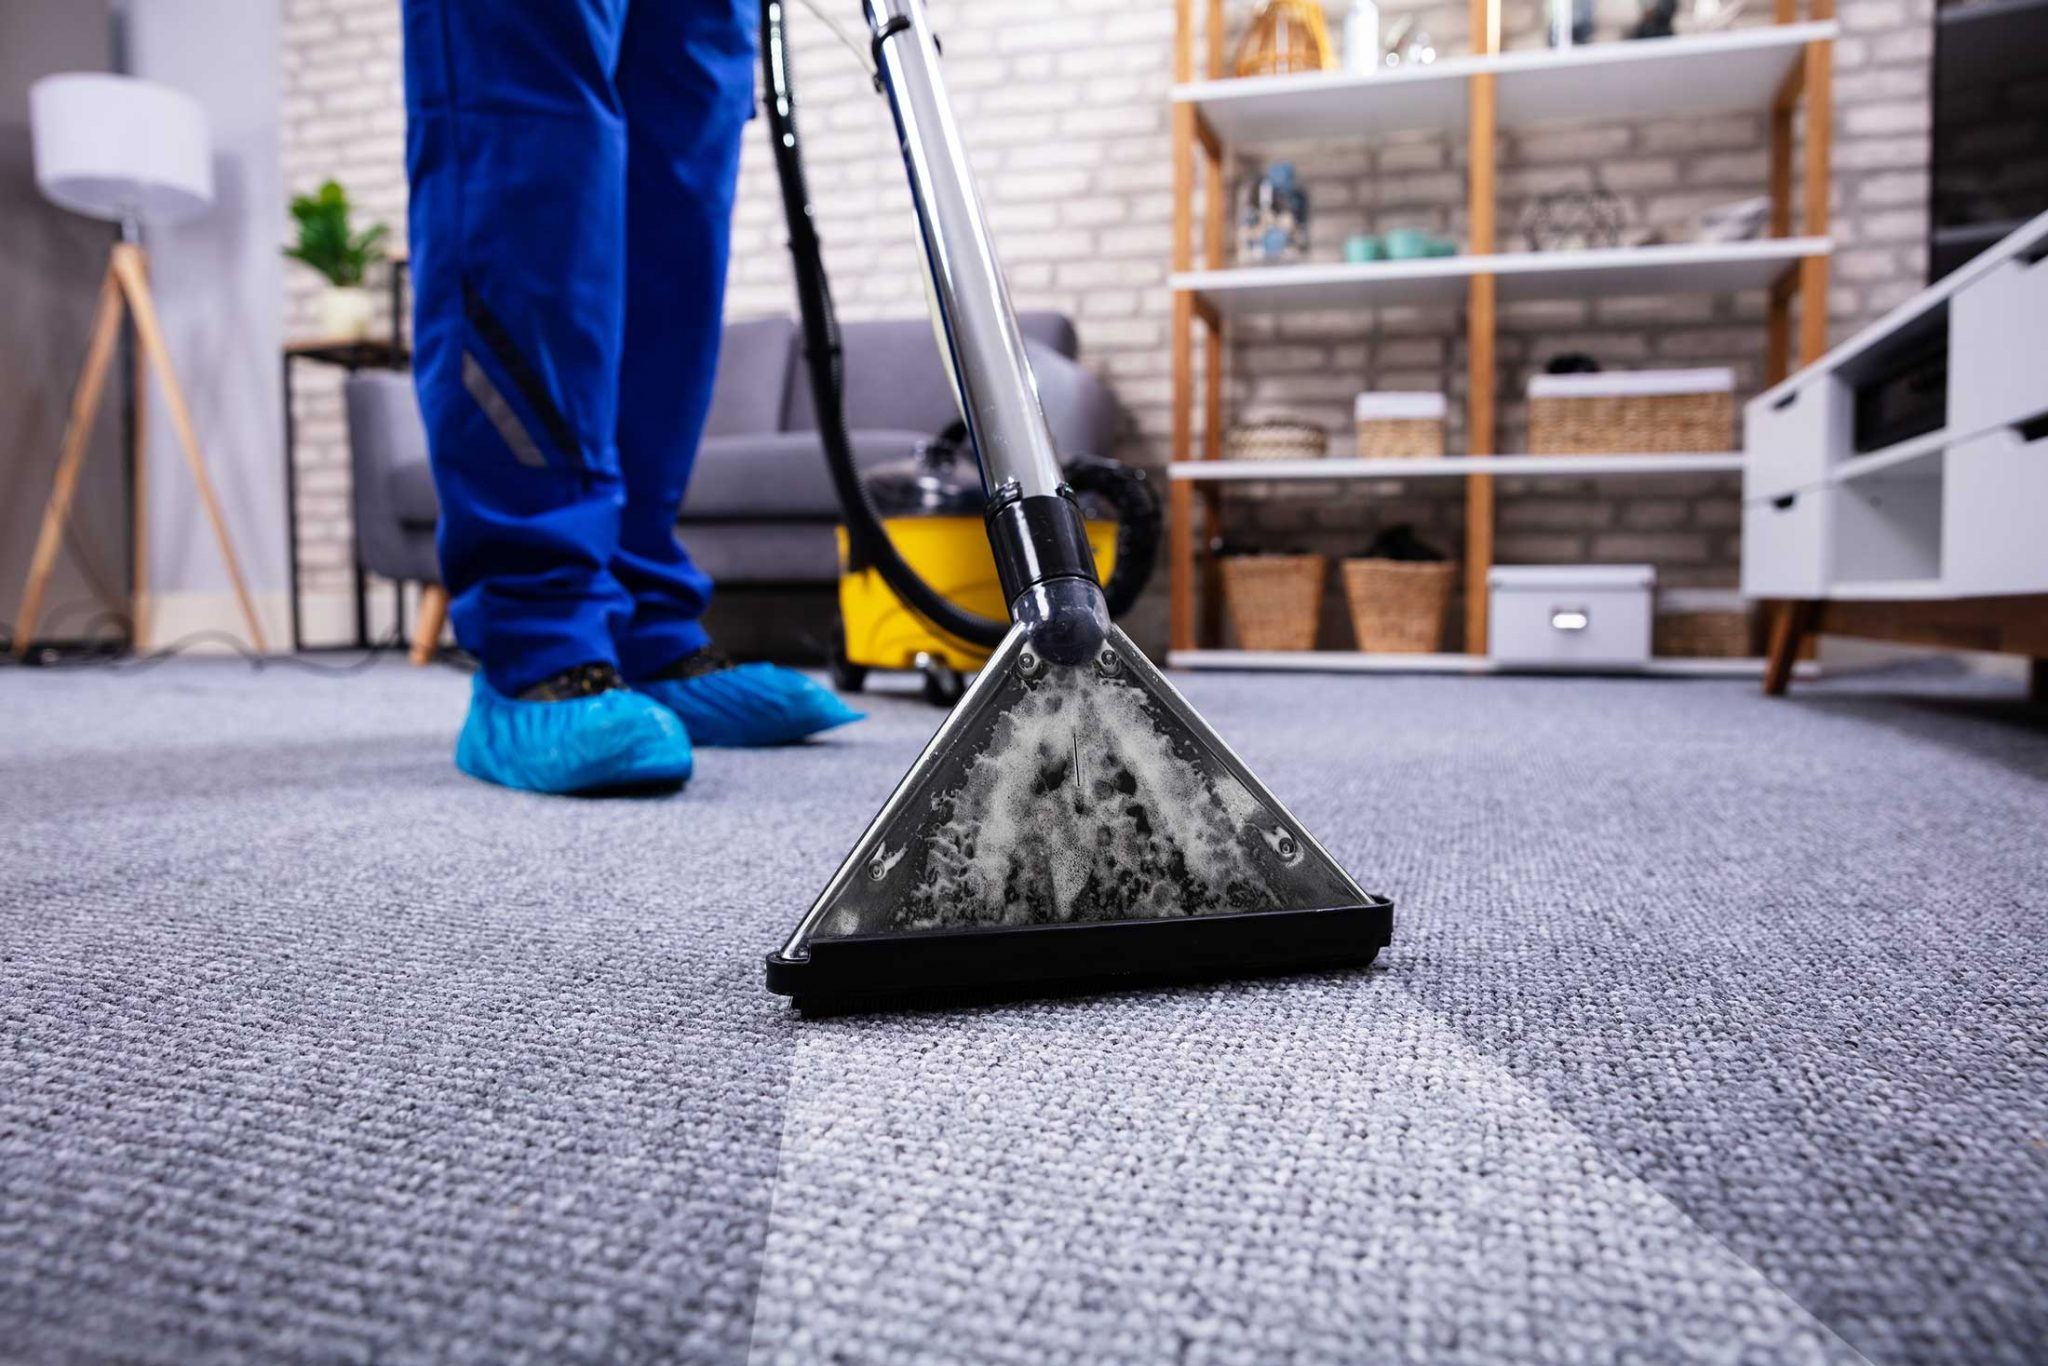 Brantford Carpet Cleaning, Commercial Cleaning Services, Janitorial & Cleaning Services, Post Construction Clean-up, Disinfectant Fogging Services Disinfectant Fogging Services. Commercial and Residential Cleaning Services. Our goal is to keep you safe in your home or office. If you are in need of this service, Call us at 1-519-209-1482. Commercial cleaning, disinfecting fogging service, disinfecting service professional, cleaning company, disinfecting company, commercial cleaning services, office cleaning, professional cleaning services, sanitizing, commercial carpet cleaner, commercial cleaning companies, commercial cleaning services near me, commercial janitorial services, office cleaning companies, office cleaning service, professional cleaning services near me, commercial office cleaning, building cleaning, floor cleaning companies, commercial office cleaning services, professional deep cleaning services, commercial floor cleaning, office carpet cleaning, deep cleaning house services, commercial floor cleaning services, commercial cleaning business, commercial cleaning prices, business cleaning, office cleaning business, commercial carpet cleaning services, janitorial cleaning services near me, professional house cleaning services near me, office cleaning prices, professional office cleaning, commercial building cleaning, cleaning office buildings, office business cleaning services, commercial janitorial, cleaning commercial, commercial cleaning company near me, offices need cleaning services, professional commercial cleaning services, office building cleaning services, commercial janitorial service companies, professional office cleaning services, commercial office cleaning companies, office cleaning services prices, commercial floor cleaning companies, commercial carpet shampooers, office cleaning agency, professional cleaning company near me, commercial building cleaning services, commercial carpet cleaning prices, commercial cleaning contractors, business office cleaning, commercial cleaning services company, top commercial cleaning companies, commercial cleaning services prices, building cleaning company, office cleaning cost, office cleaning services company, office commercial cleaning, Carpet Cleaning Company